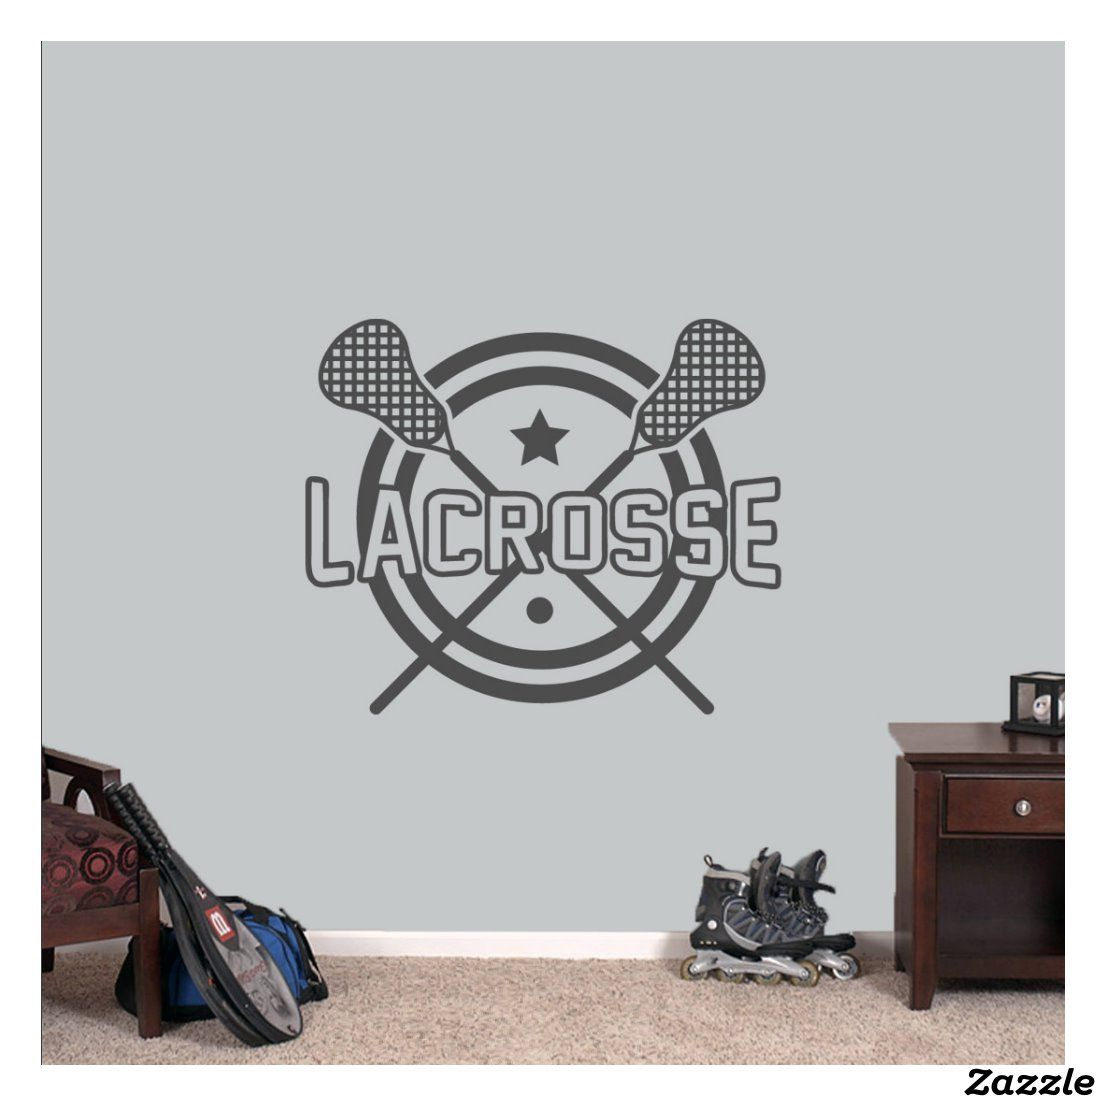 Large Lacrosse Wall Decal Zazzle Com In 2020 Custom Wall Decal Wall Decals Lacrosse Room [ 1106 x 1106 Pixel ]